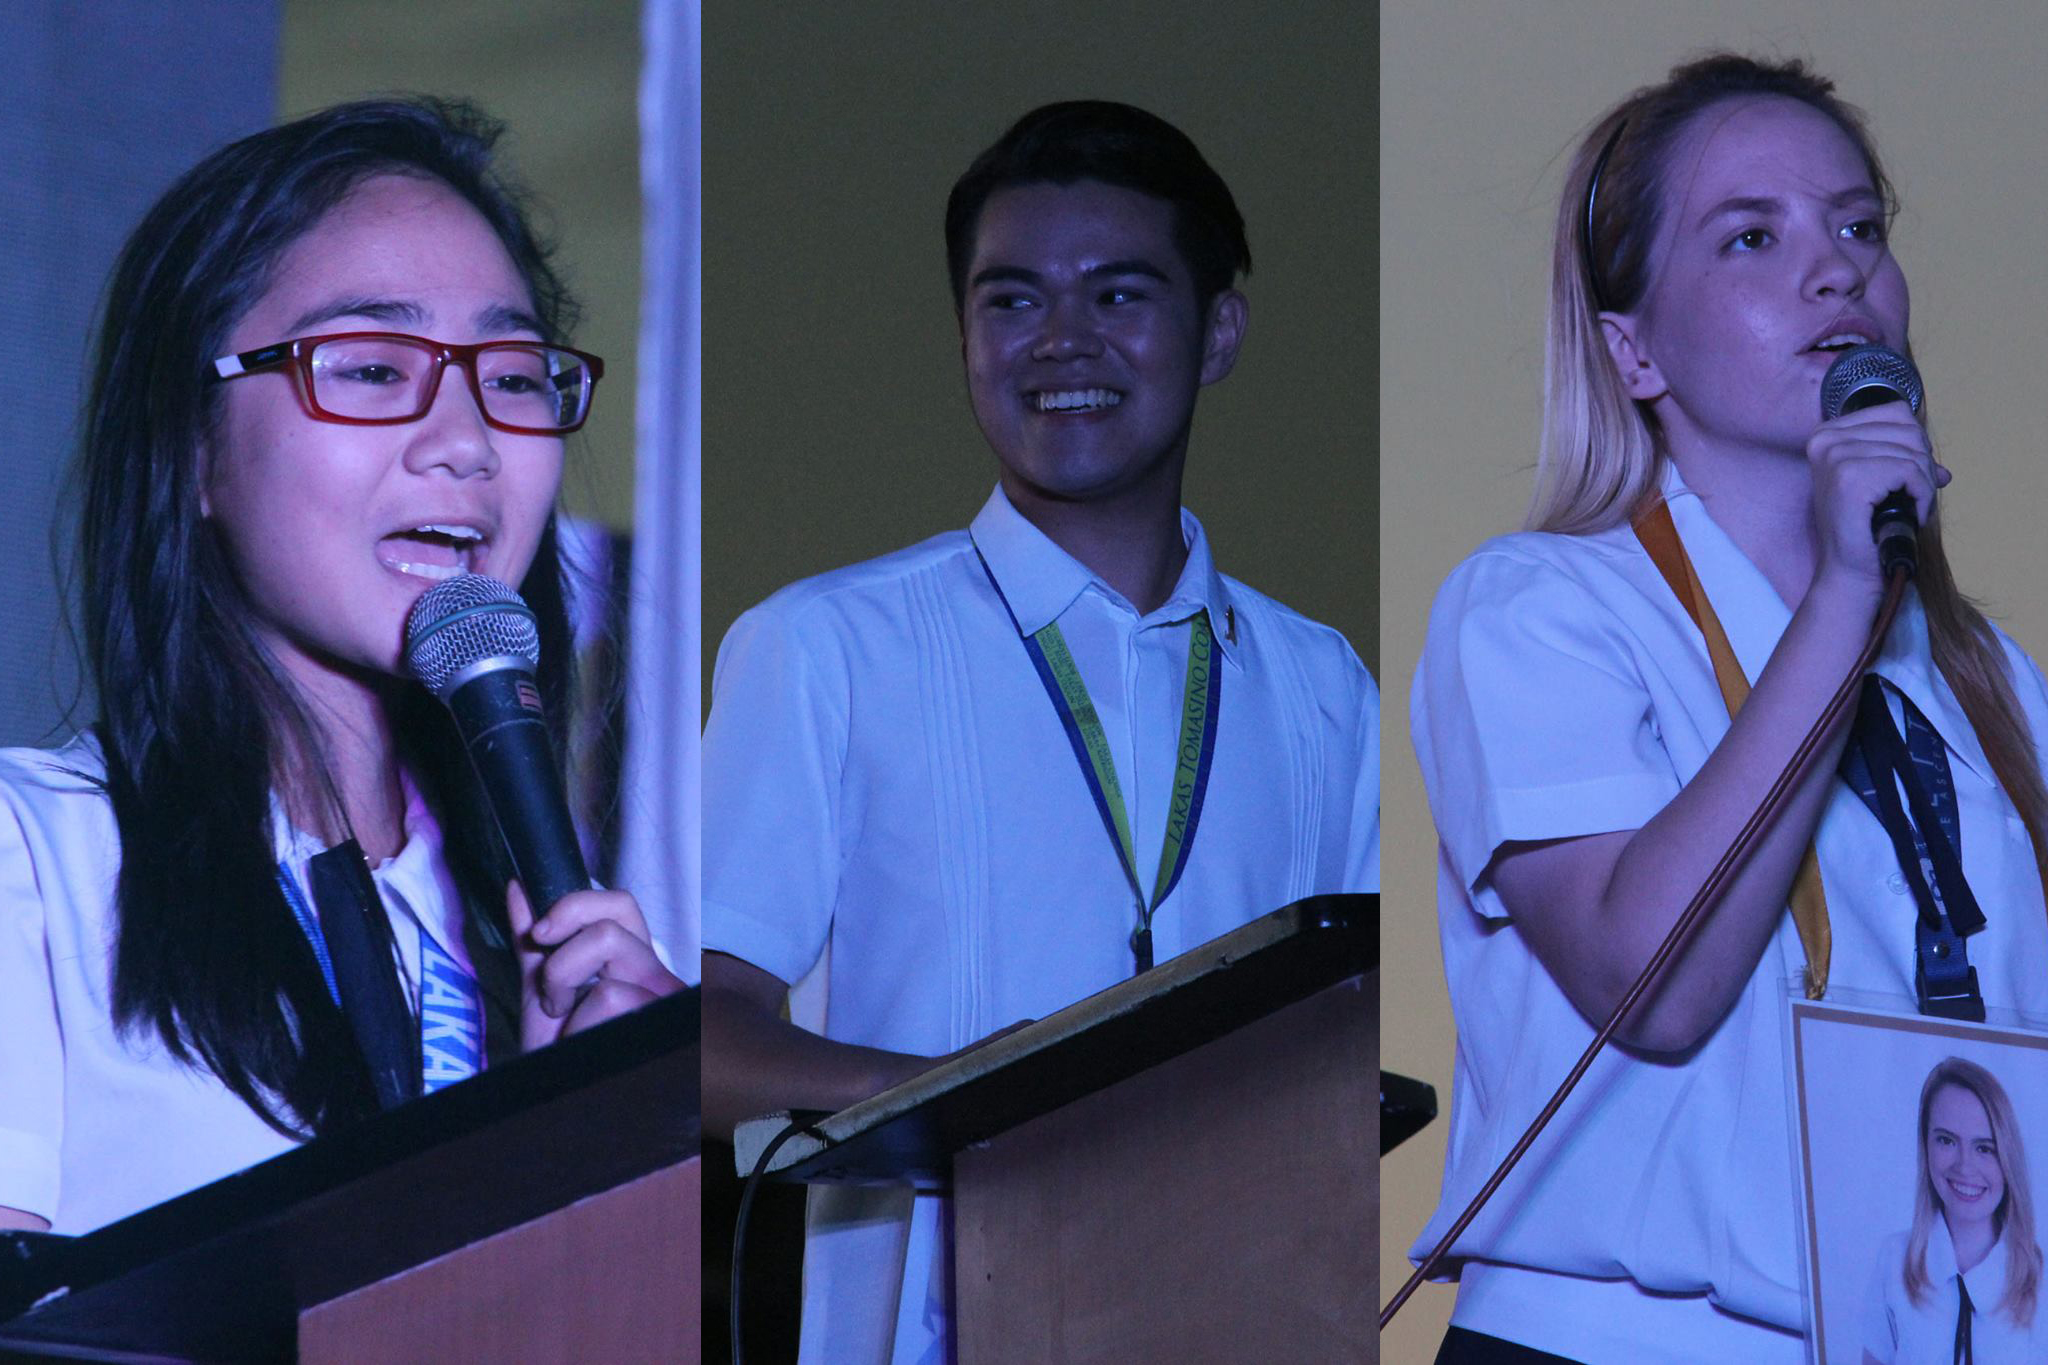 Artlet CSC bets seek active studentry in mandatory debate